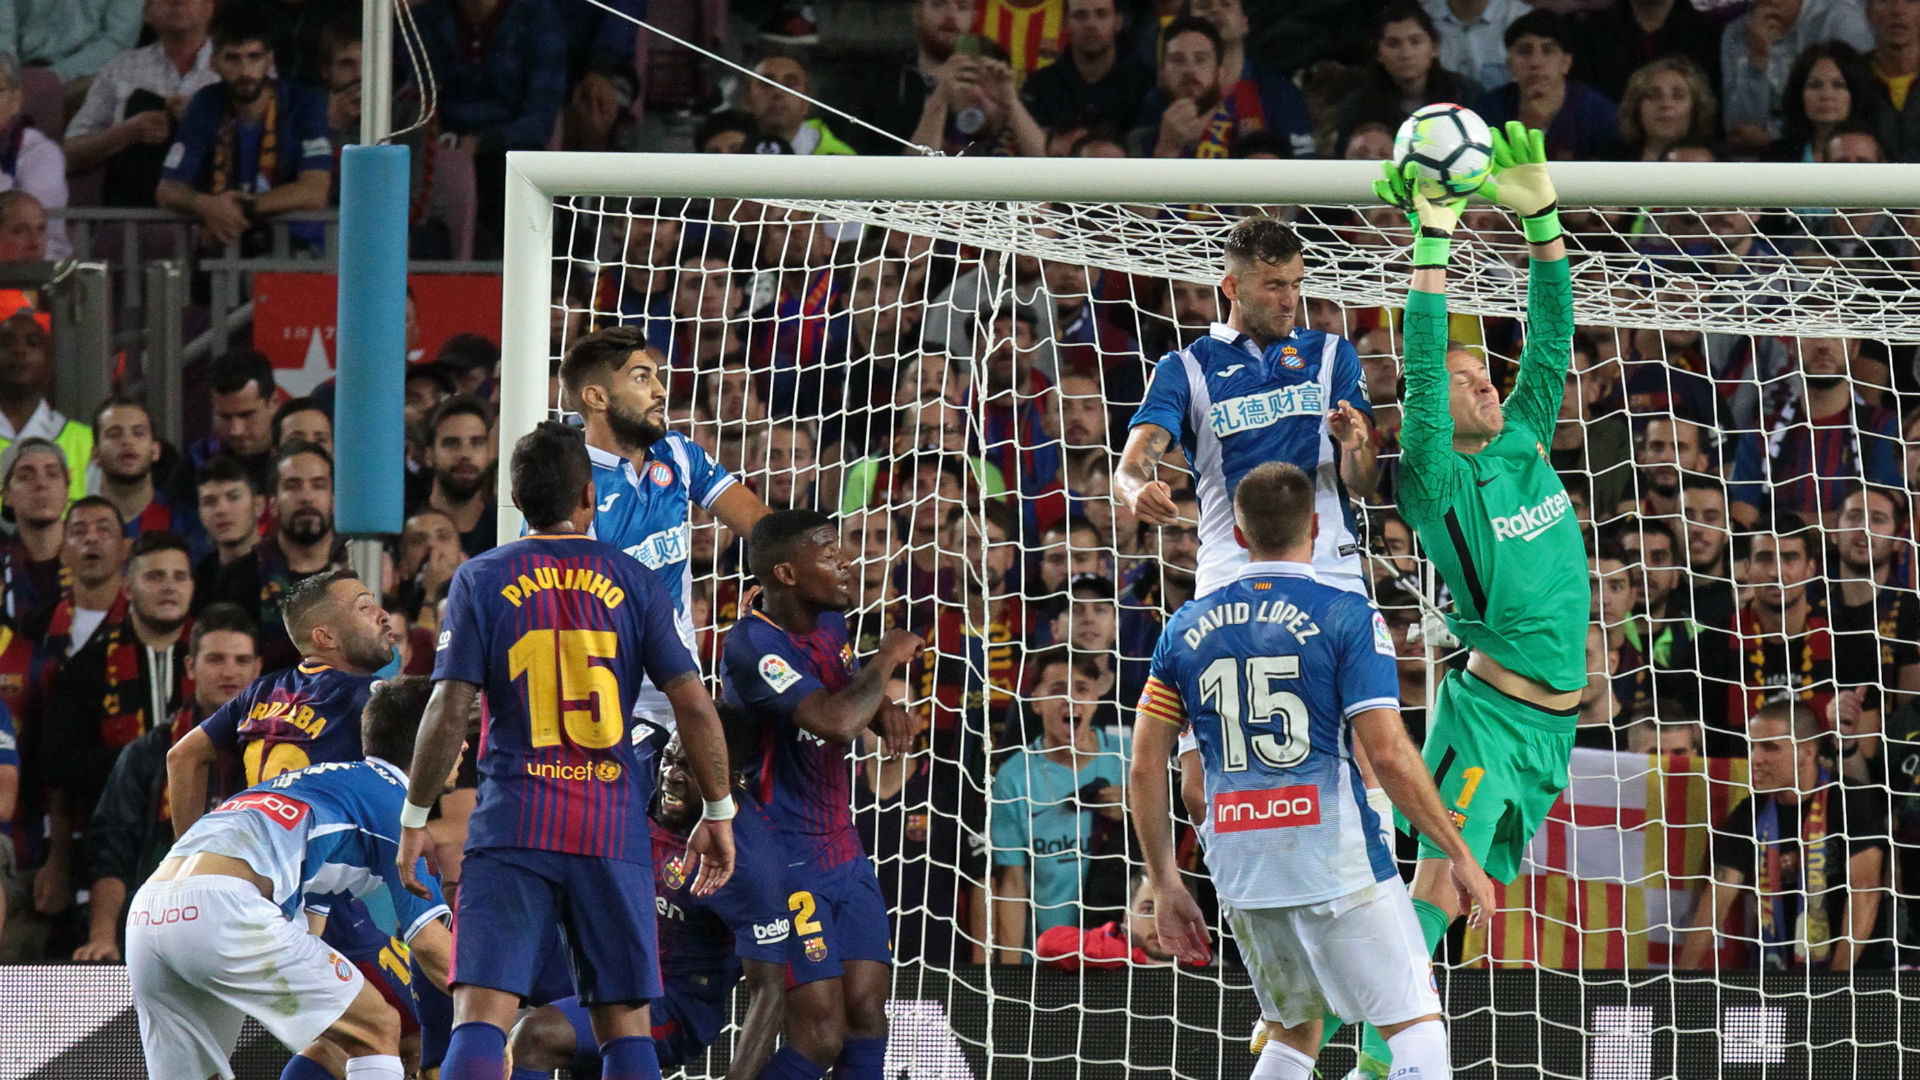 Gerard Pique DEFENDS controversial goal celebration